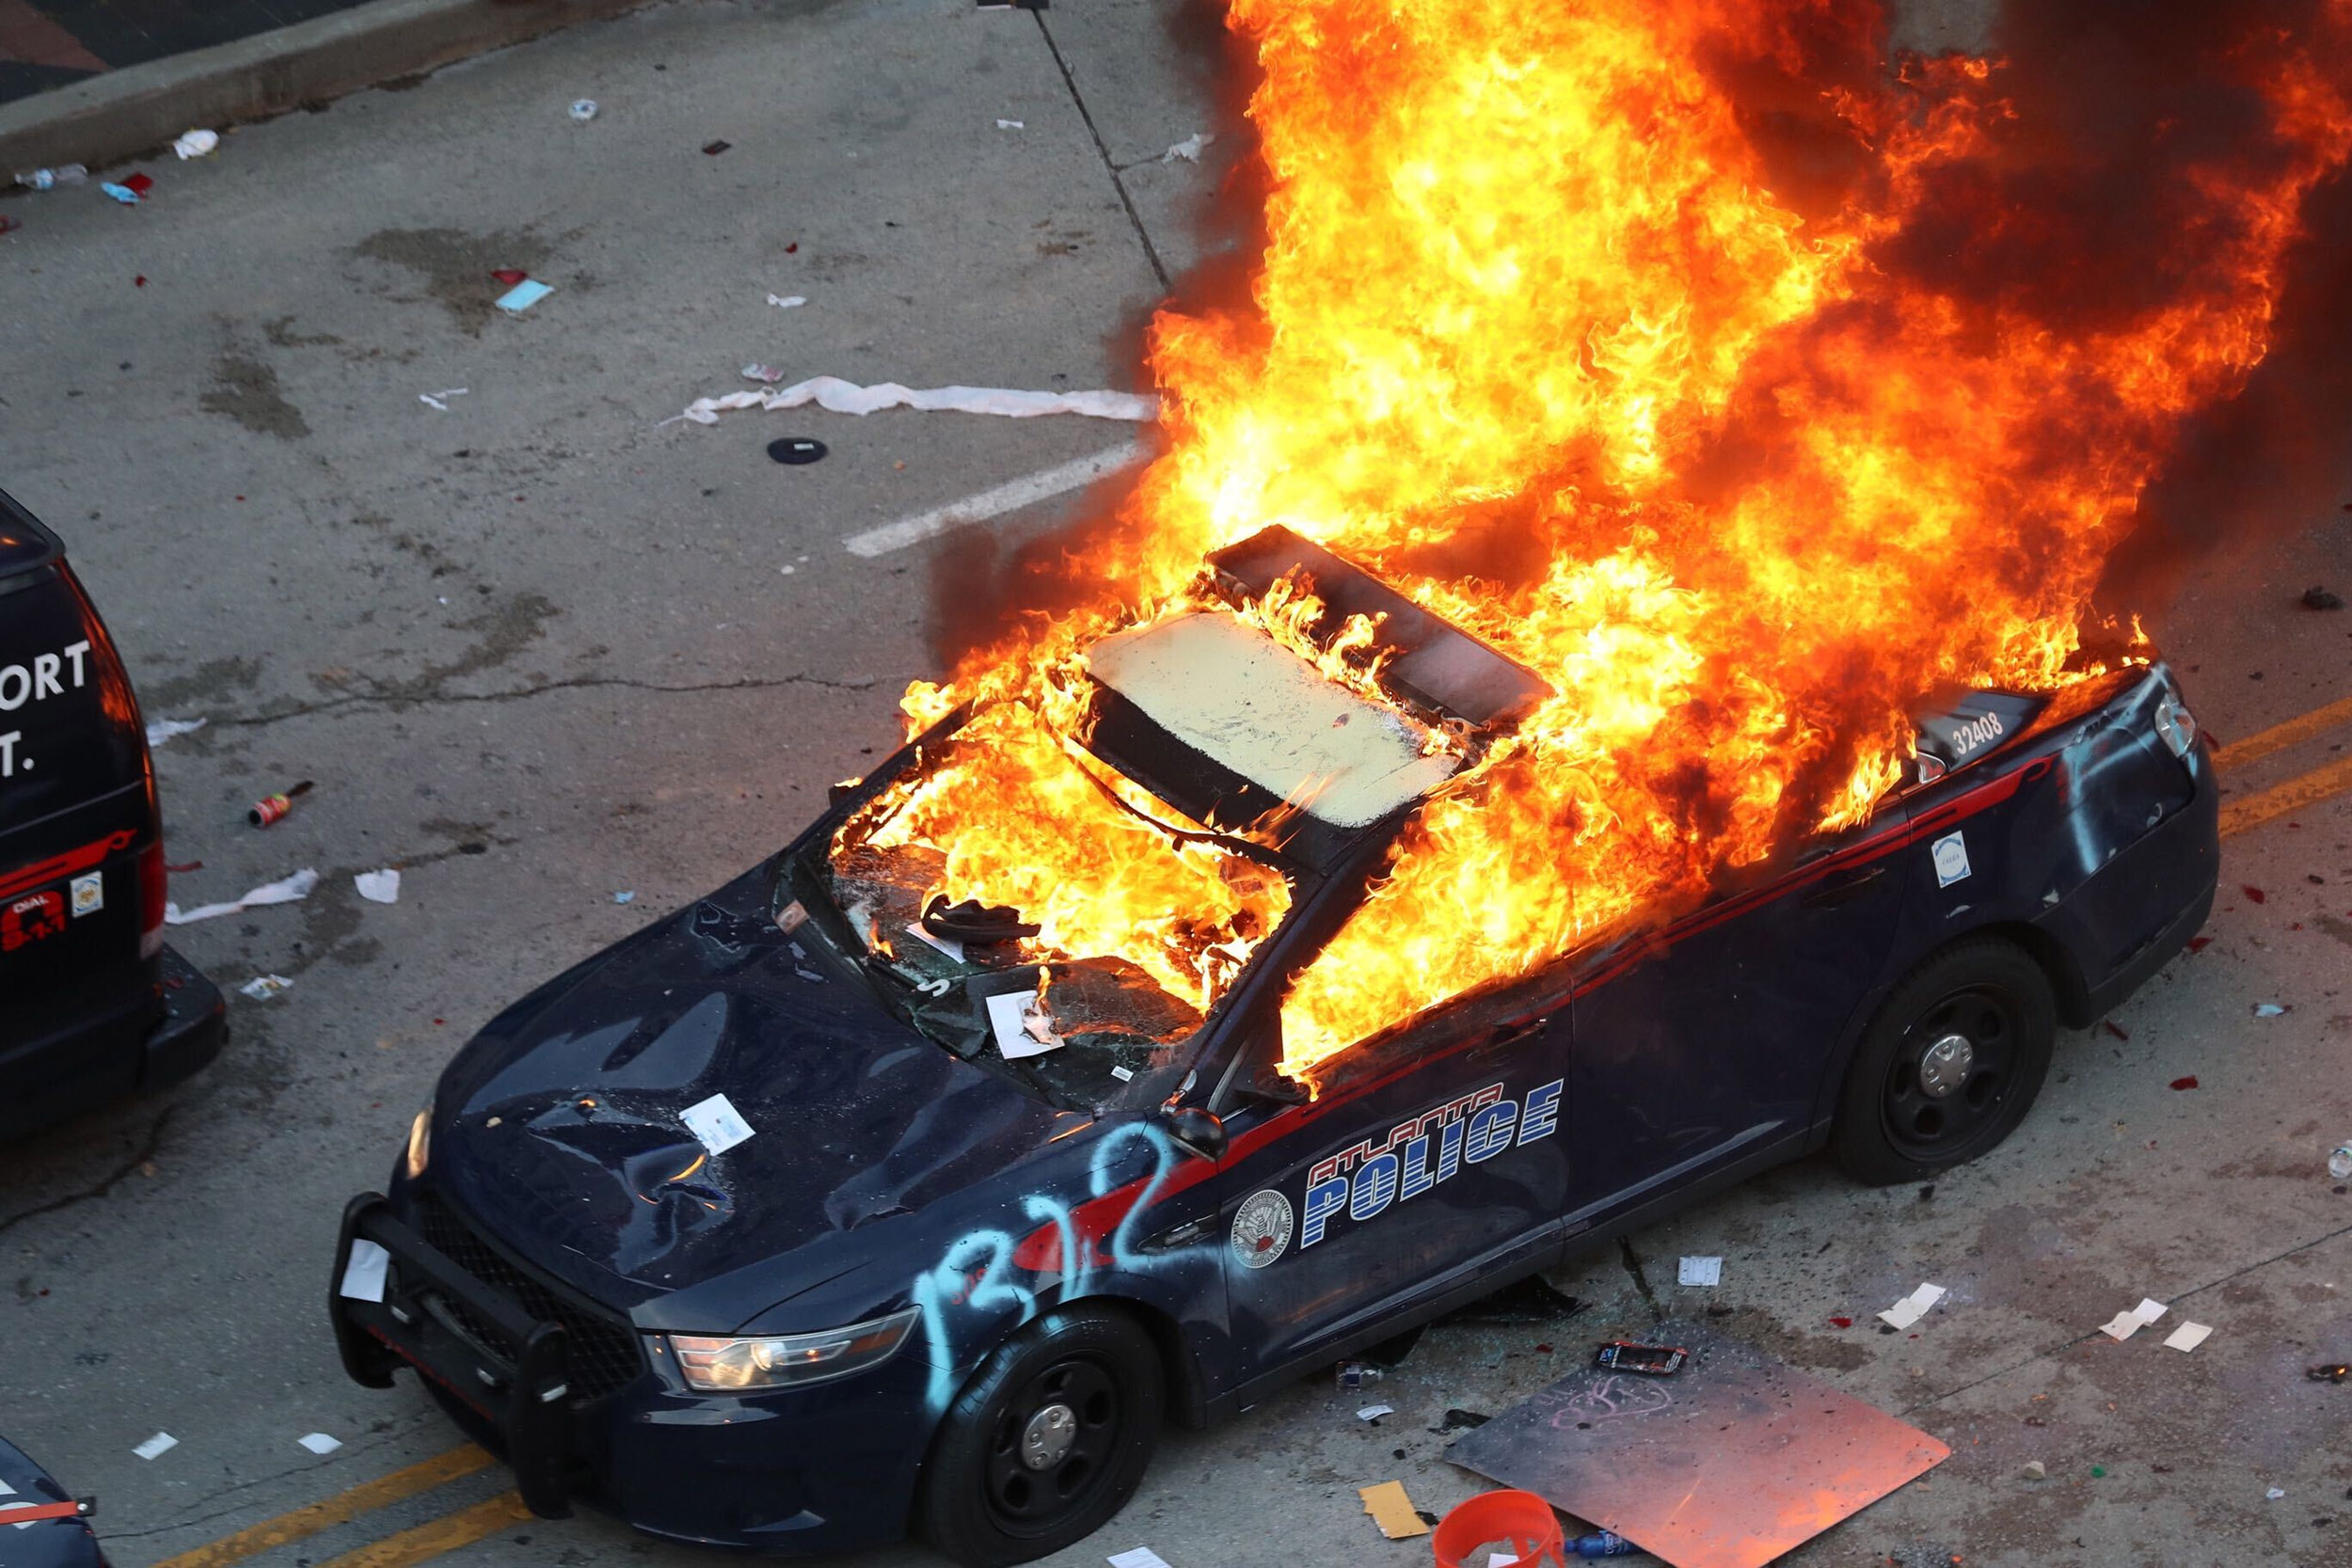 A police car burns after protesters marched to the Georgia State Capitol and returned to the area around the Centennial Olympic Park and CNN center in Atlanta, Gerpon Friday, May 29.